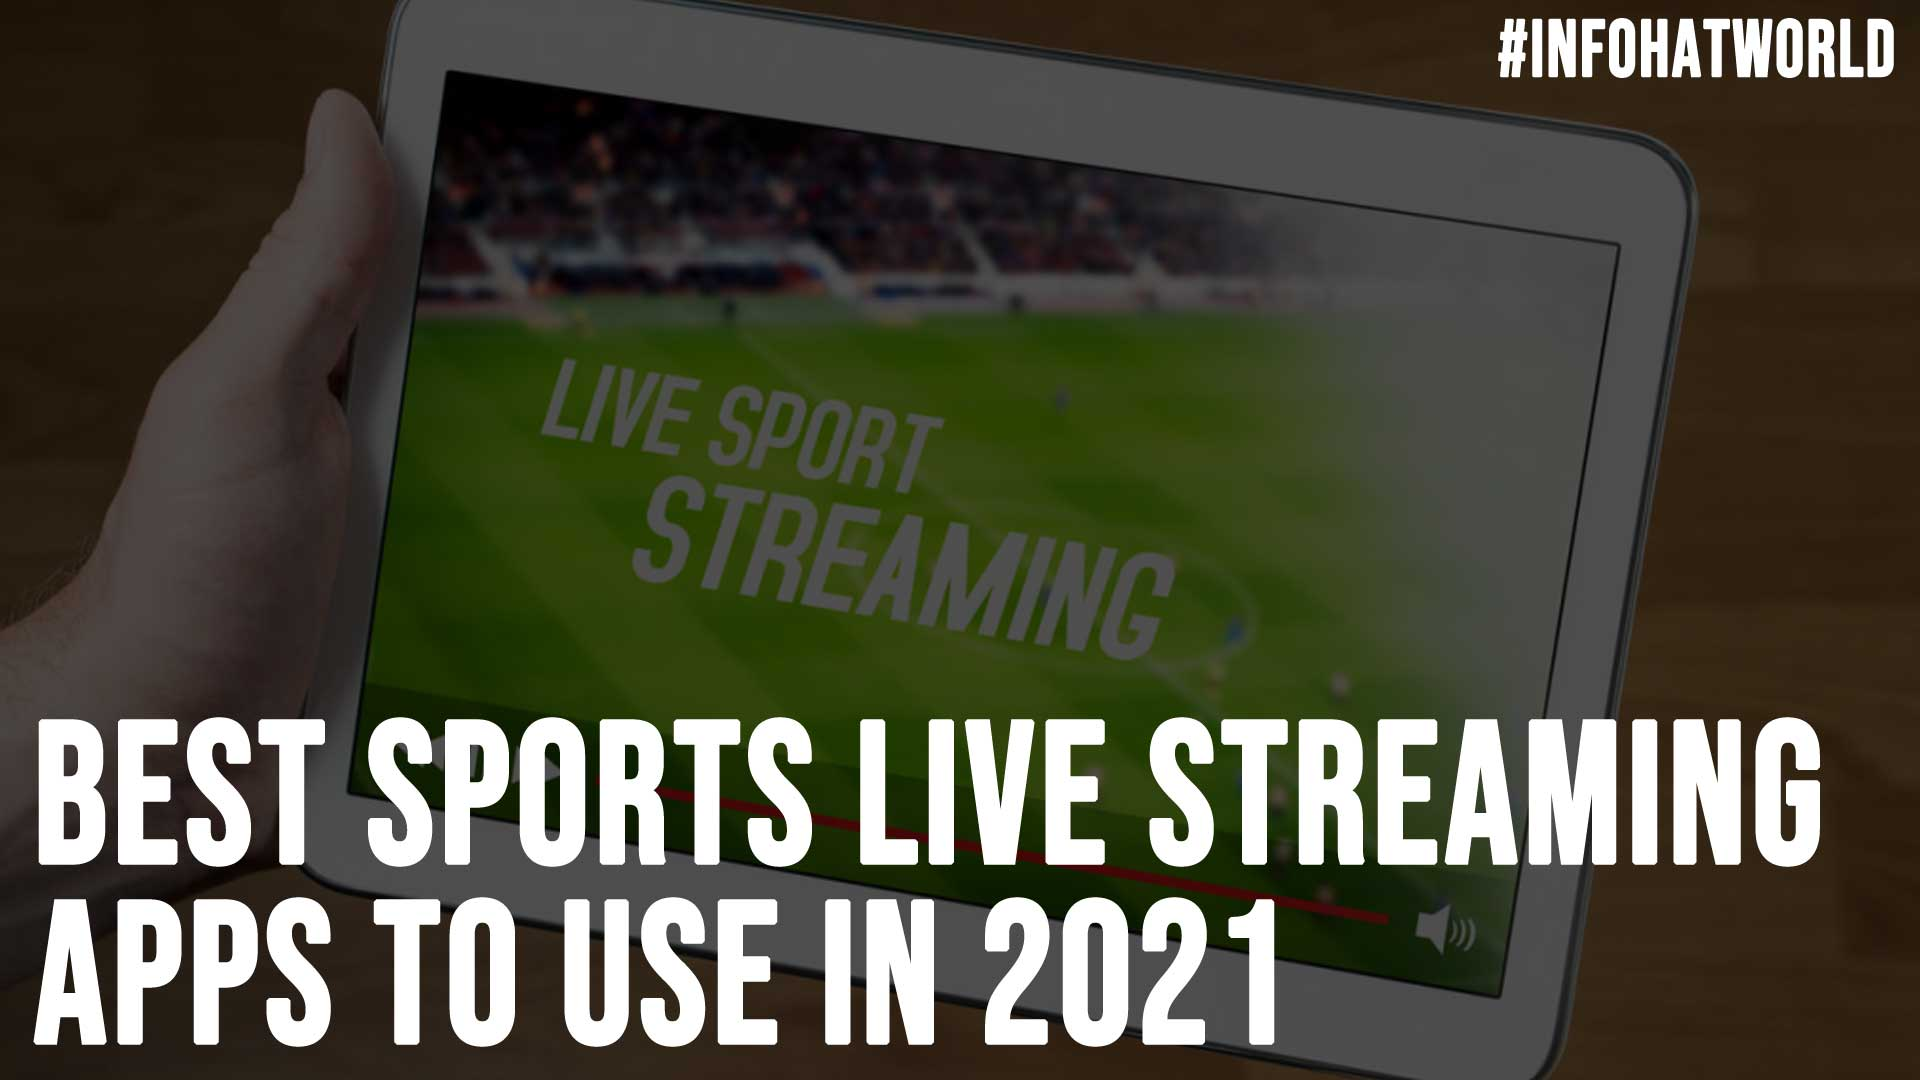 Best Sports Live Streaming Apps to Use in 2021